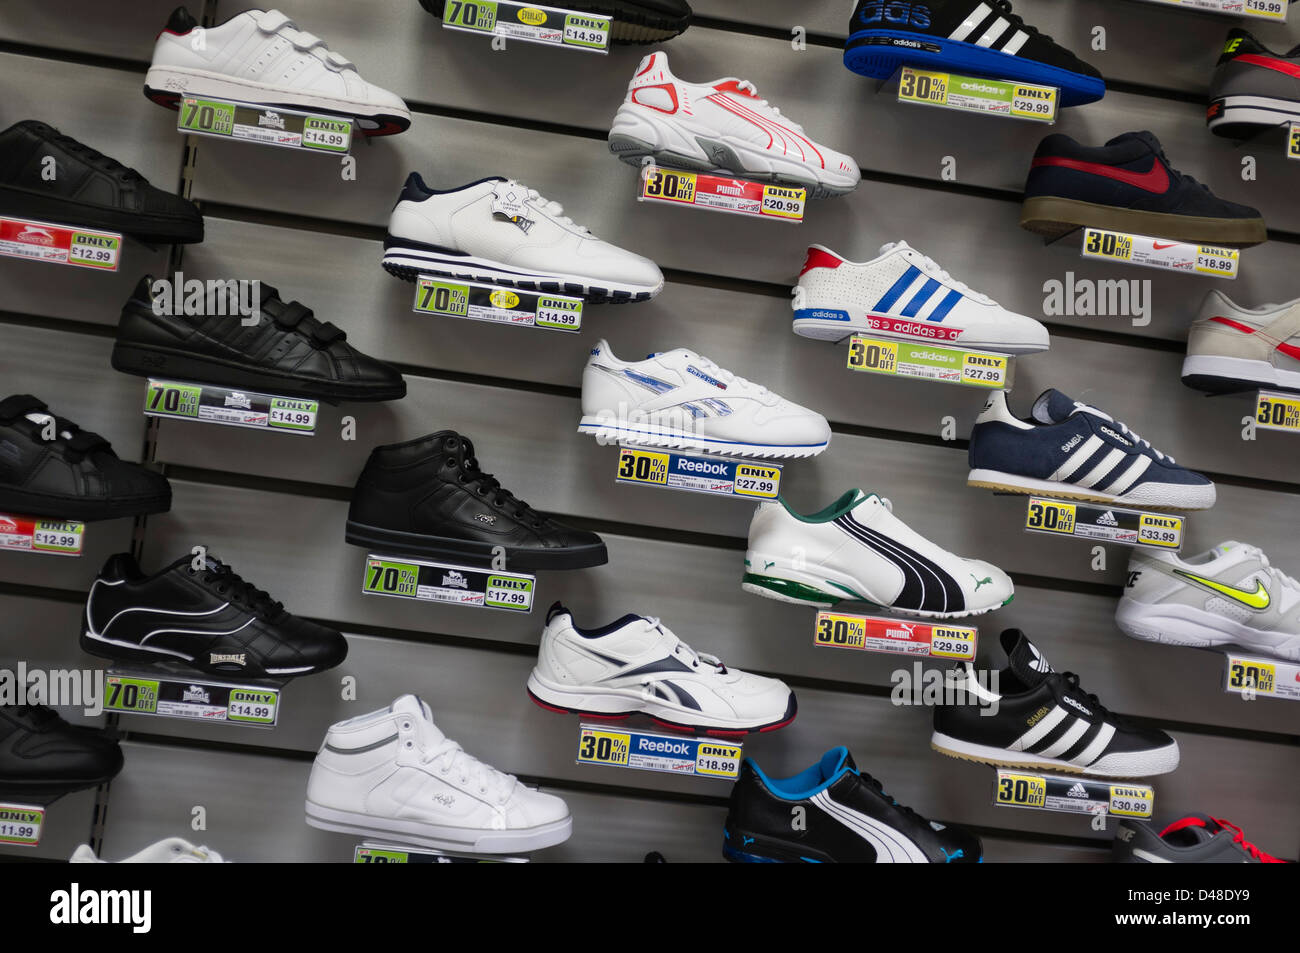 e396c2a746498 Sports Direct Store Uk Imágenes De Stock   Sports Direct Store Uk ...